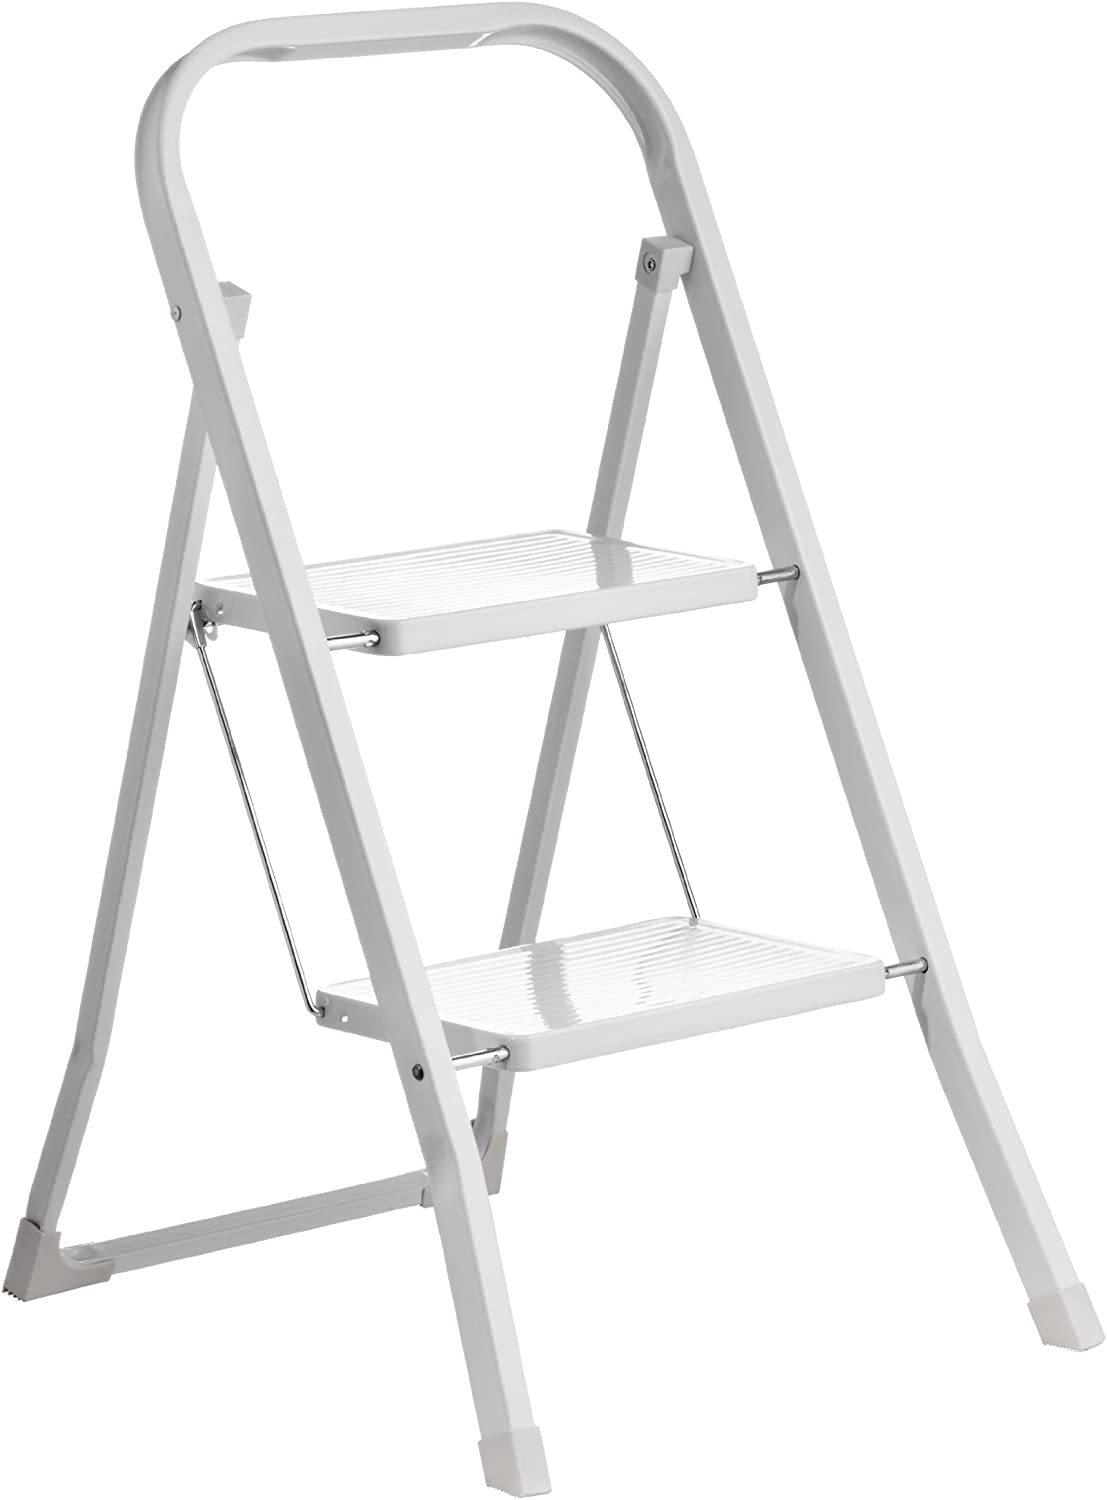 Premier Housewares - Escalera Plegable de 2 escalones (89 x 42 x 54 cm), Color Blanco: Amazon.es: Hogar